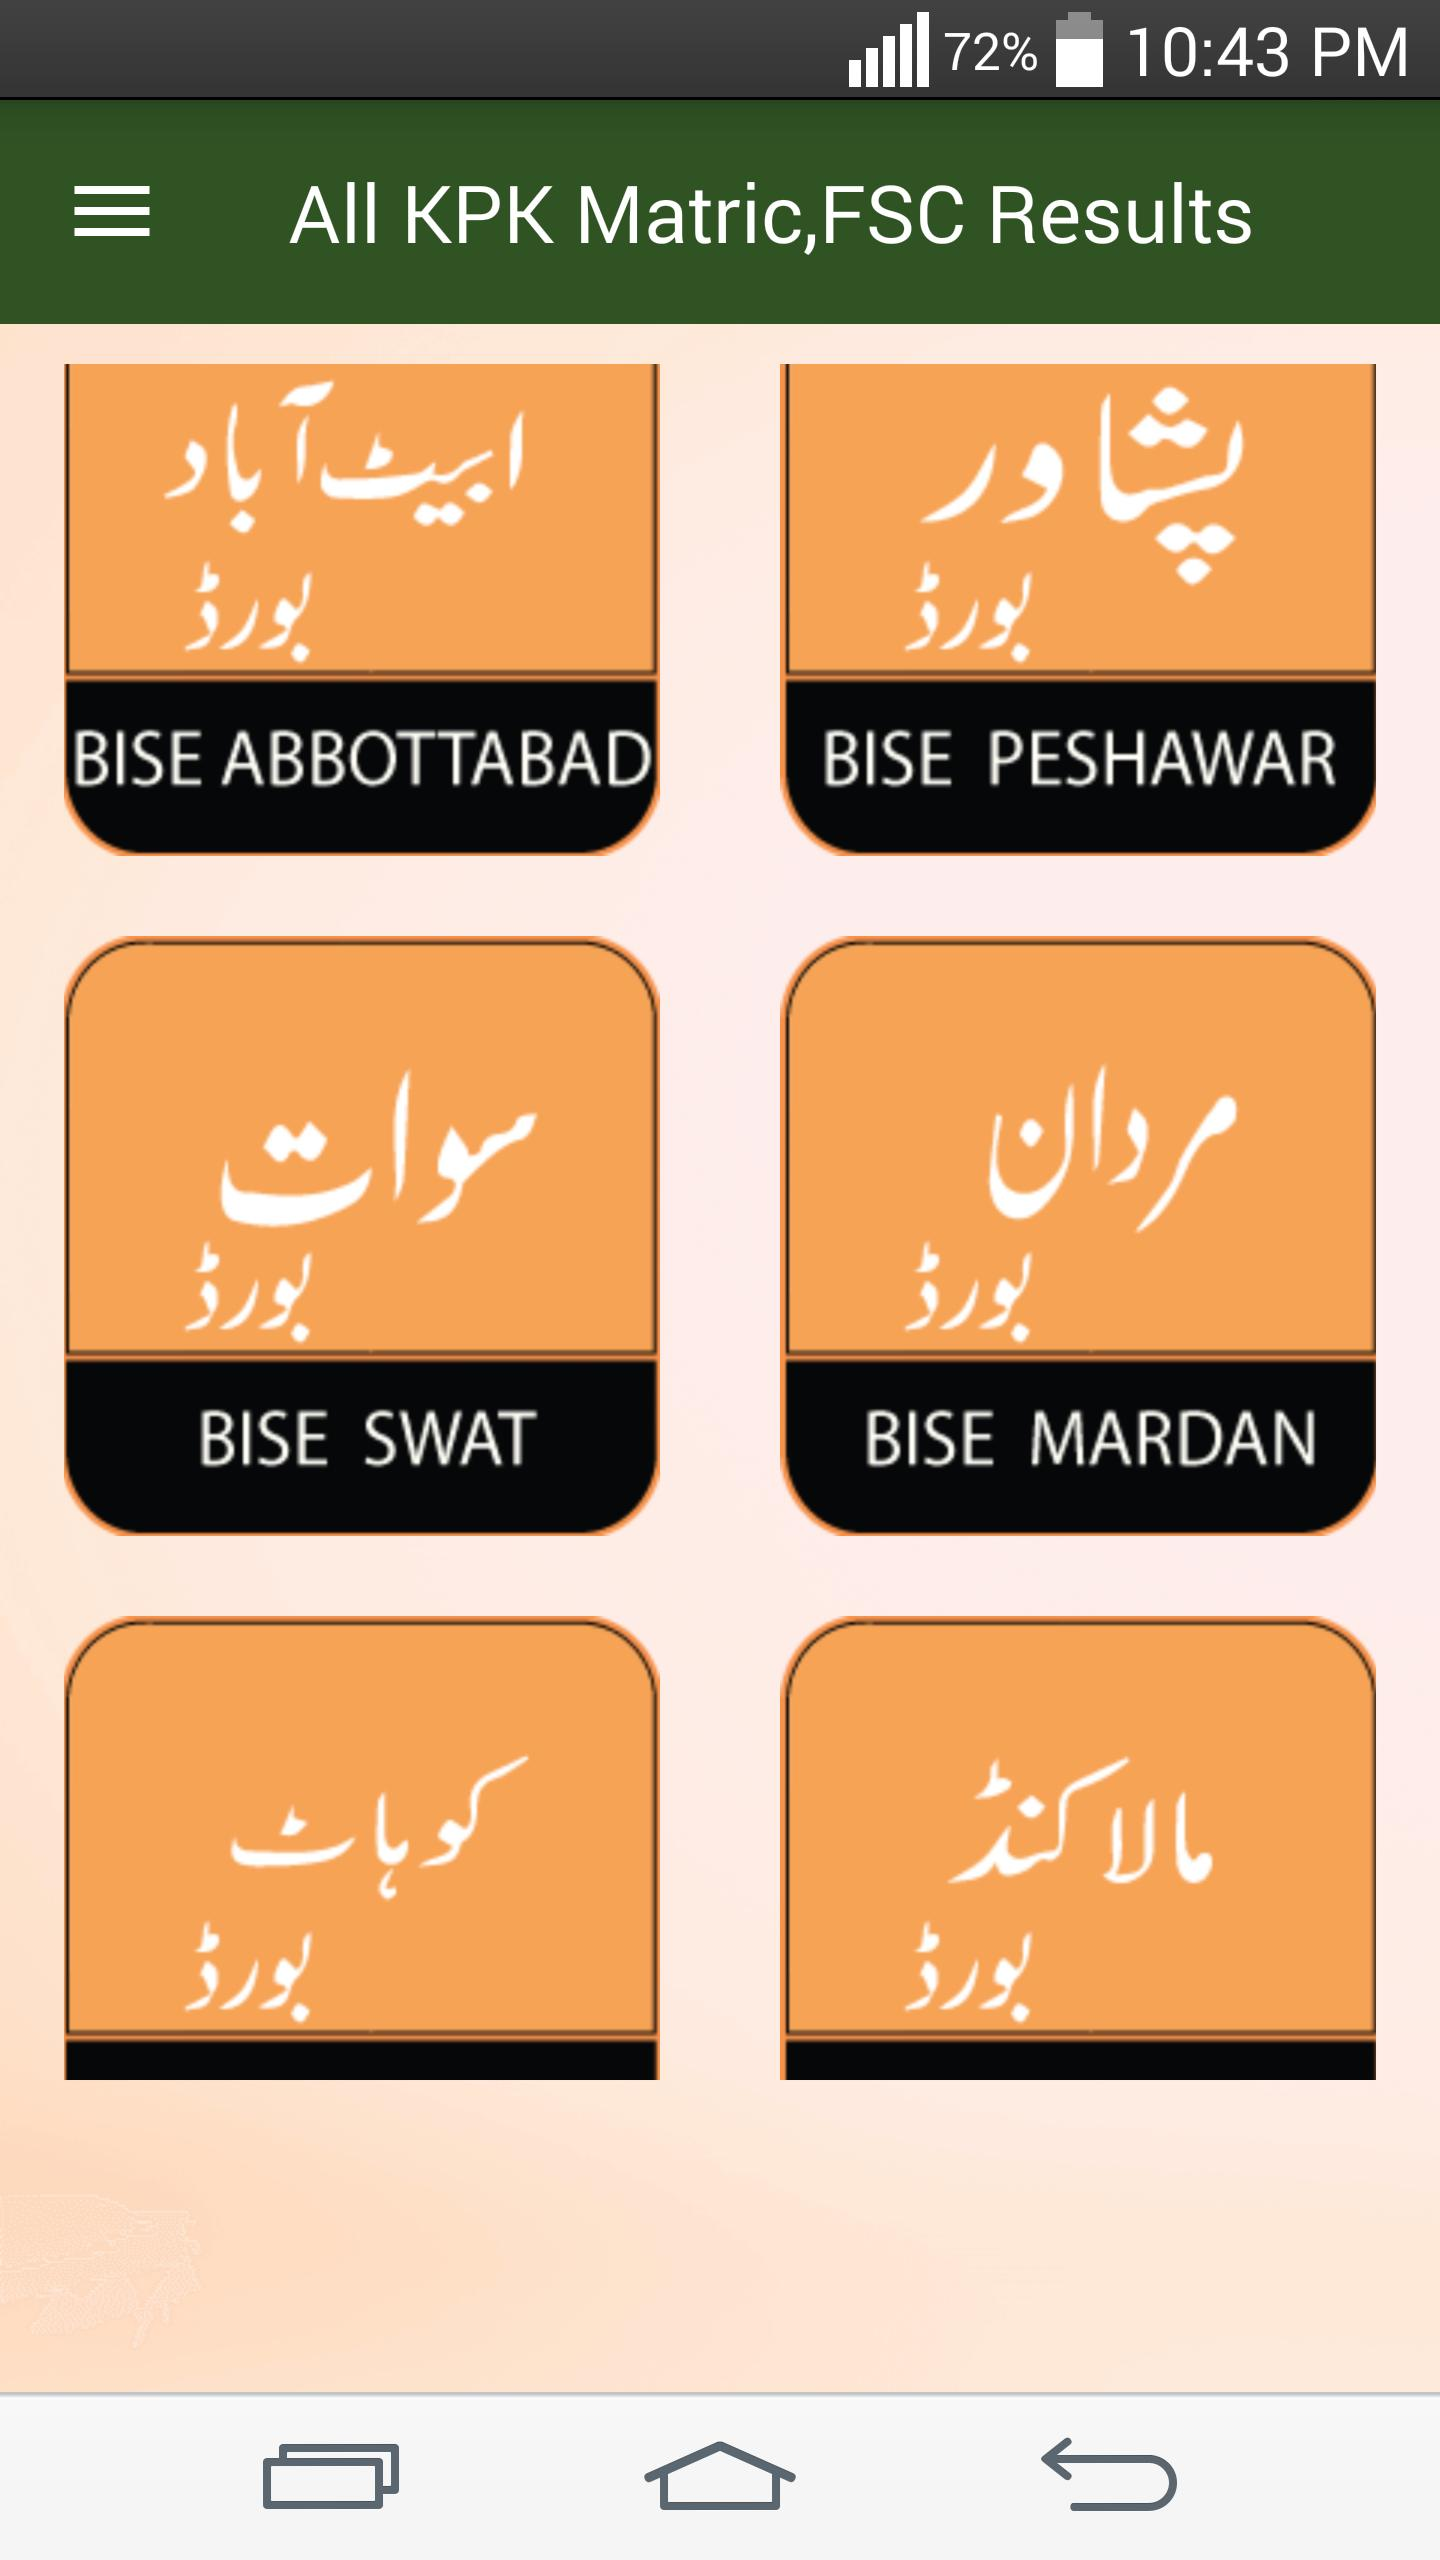 All Kpk Board Results Matric F s c Check online for Android - APK